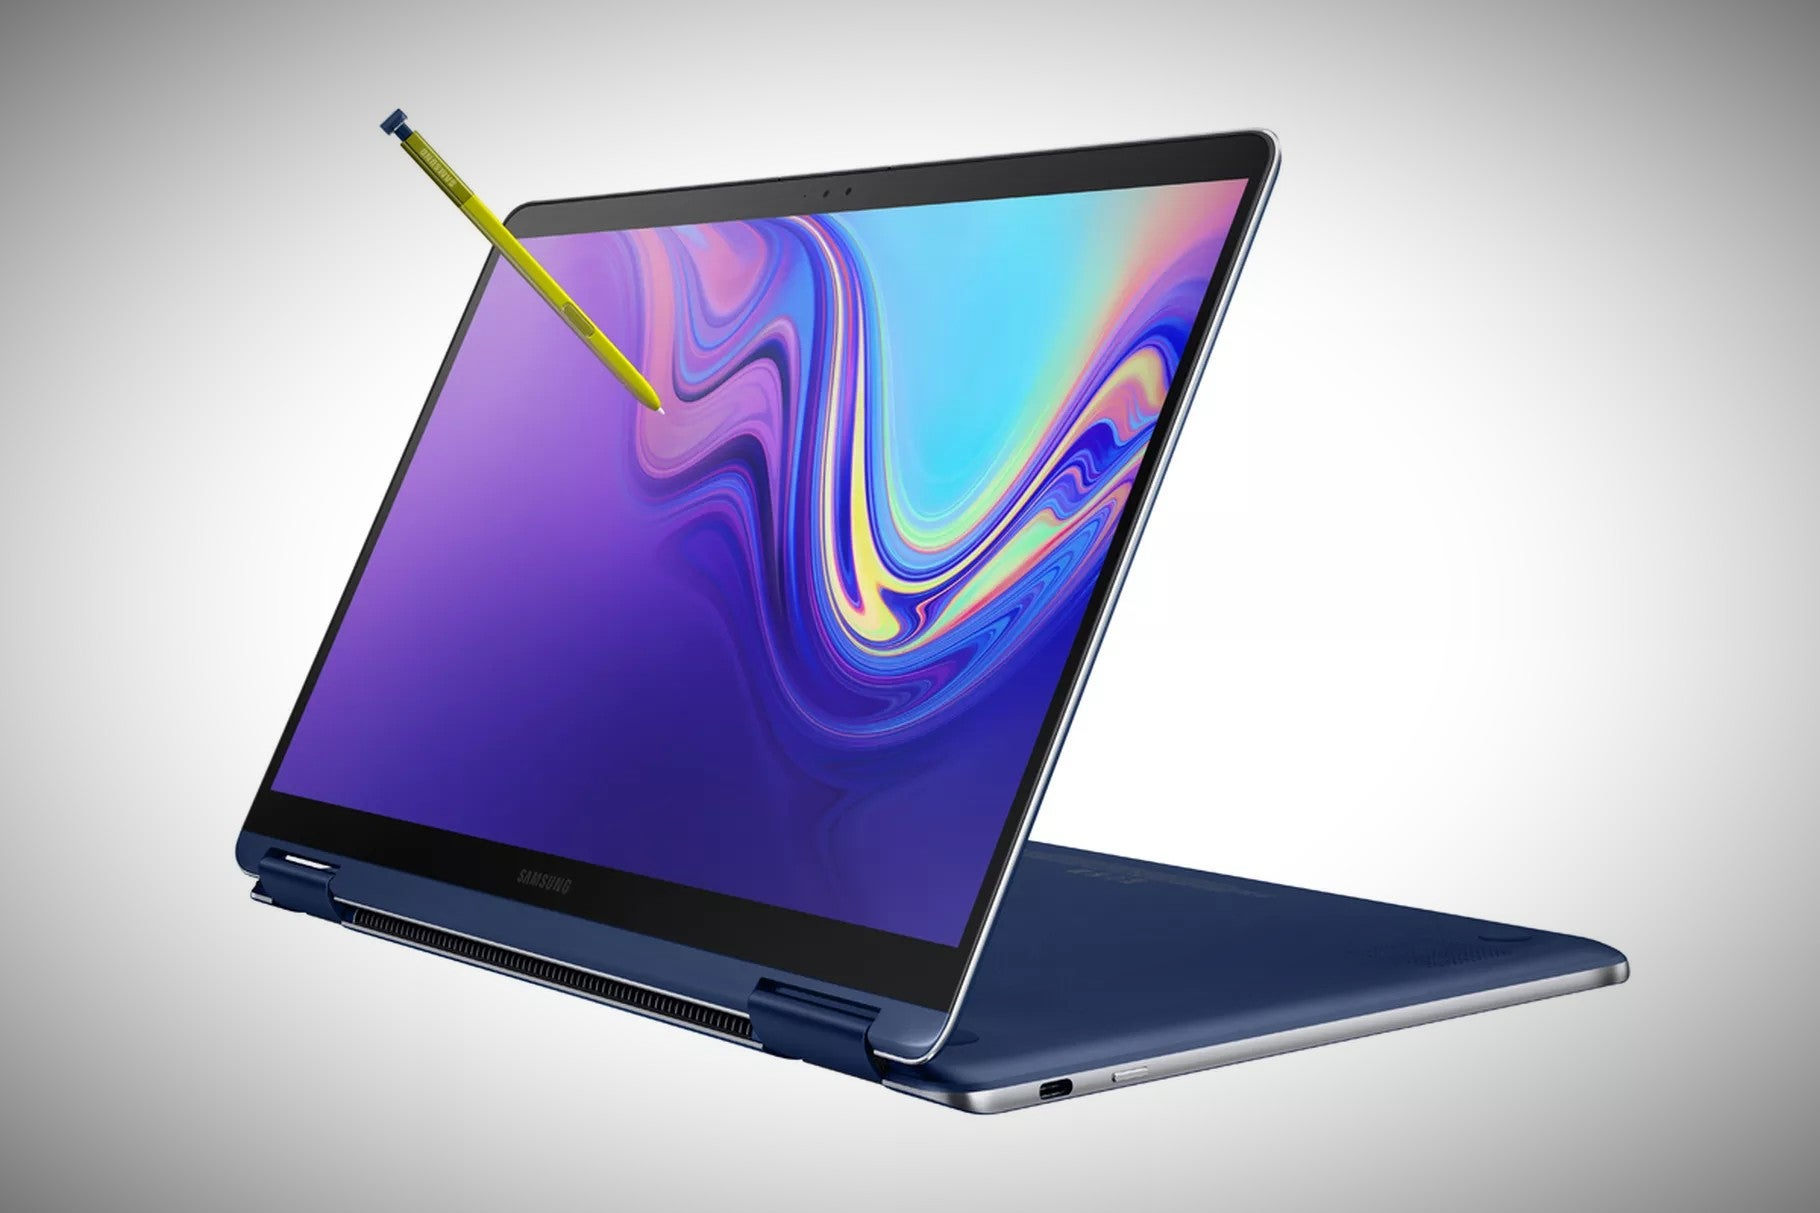 Samsung's Notebook 9 Pen update could be the best laptop of CES 2019